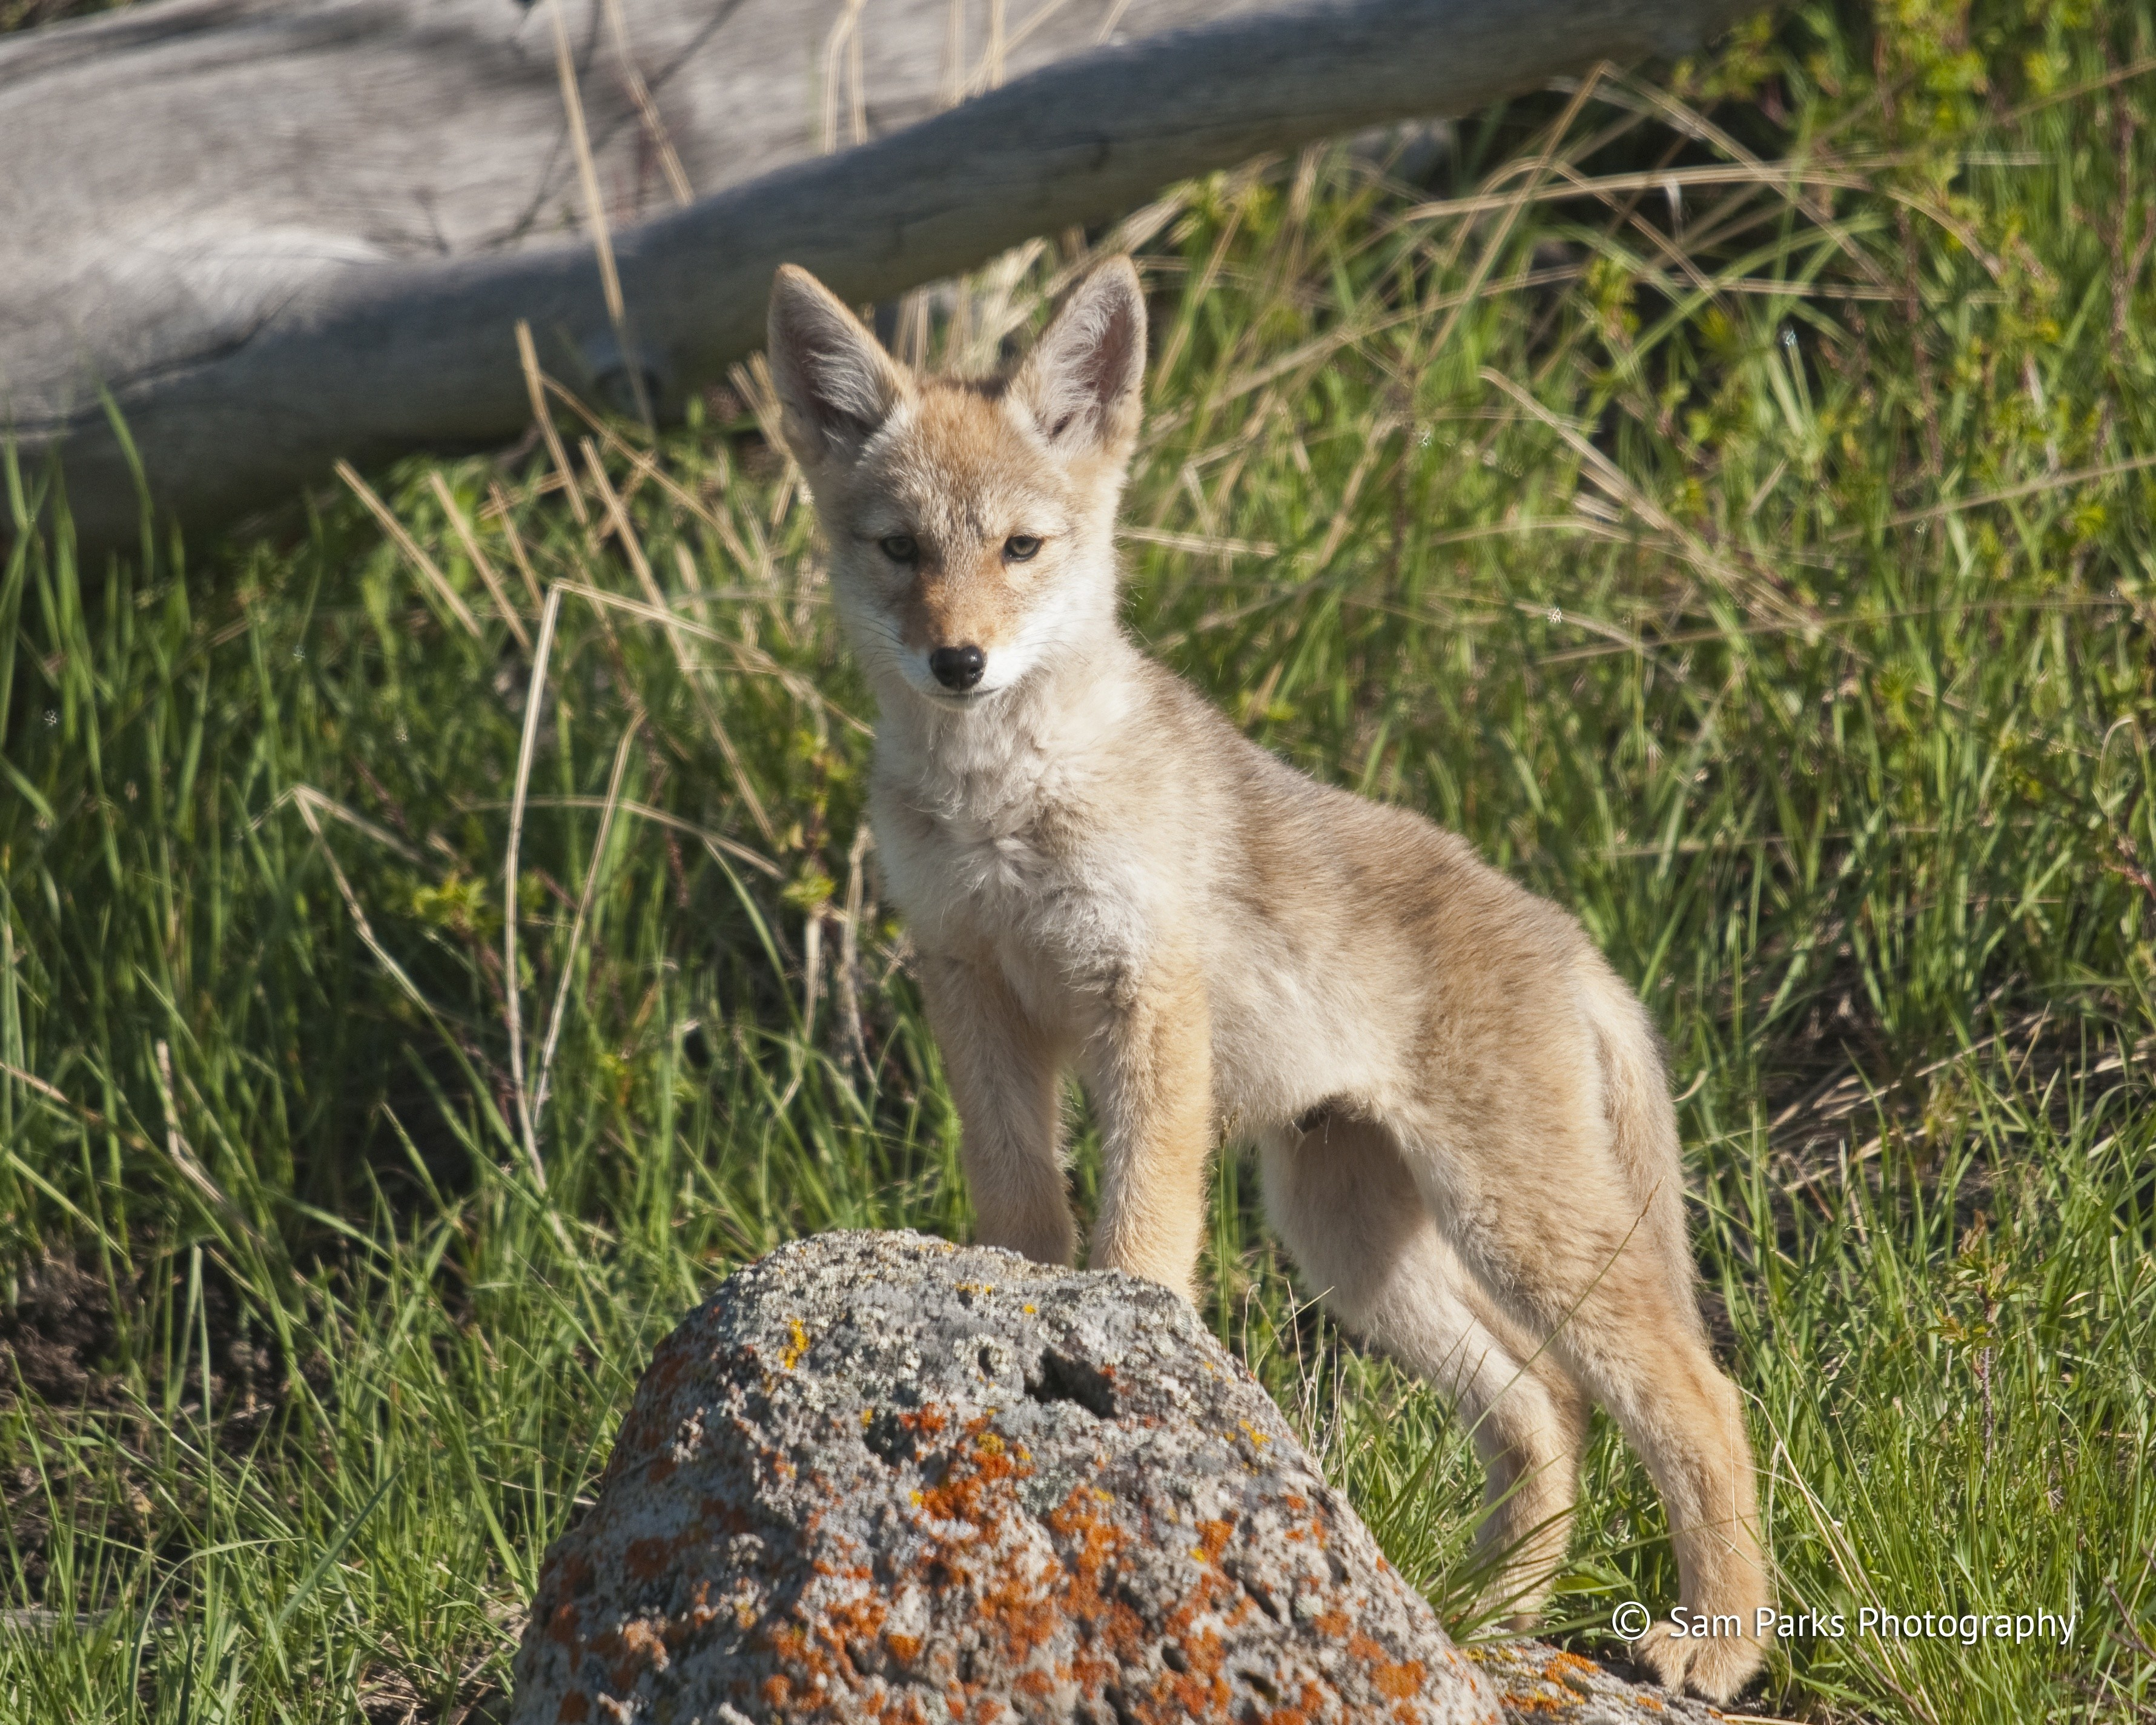 © Sam Parks, Coyote pups are generally born in April and pupping season (April-August) is a time when coyote parents will be more protective of their young and more territorial around their den site.